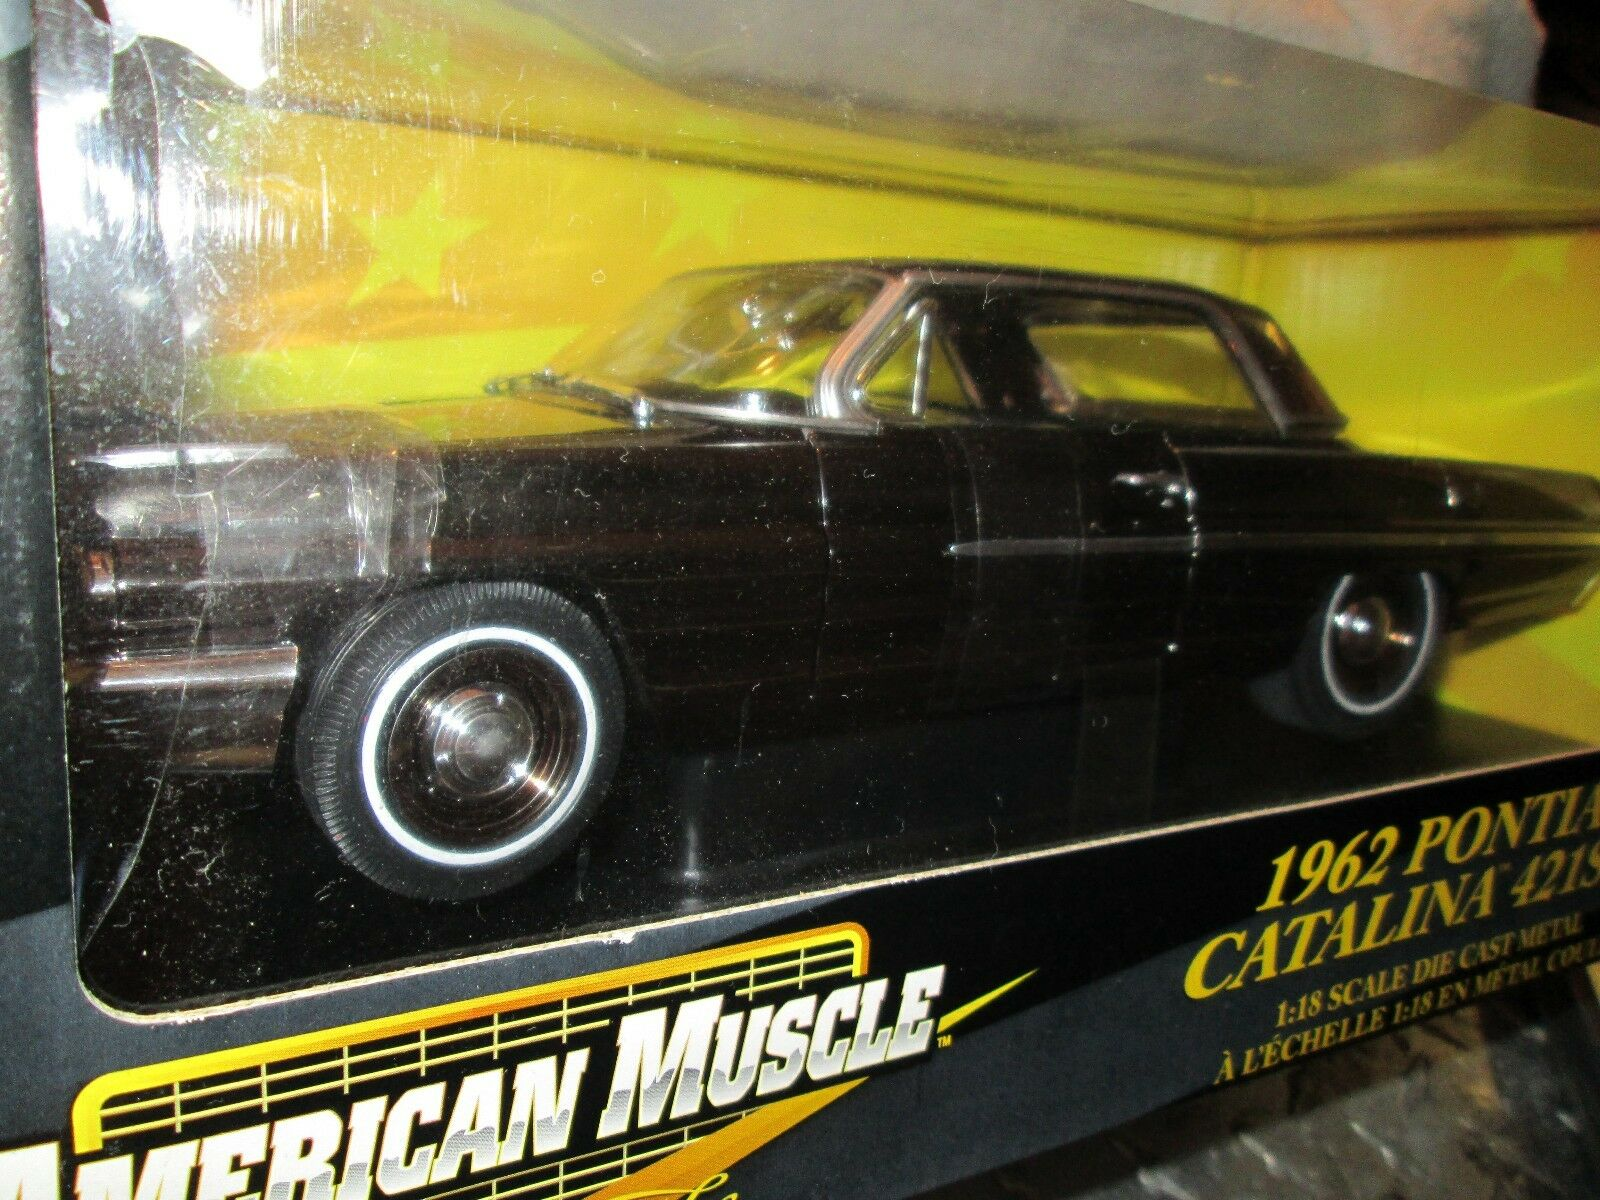 62 Pontiac Catalina 421 Sd 1 18 Ertl American Muscle Poursuite Noir Chrome